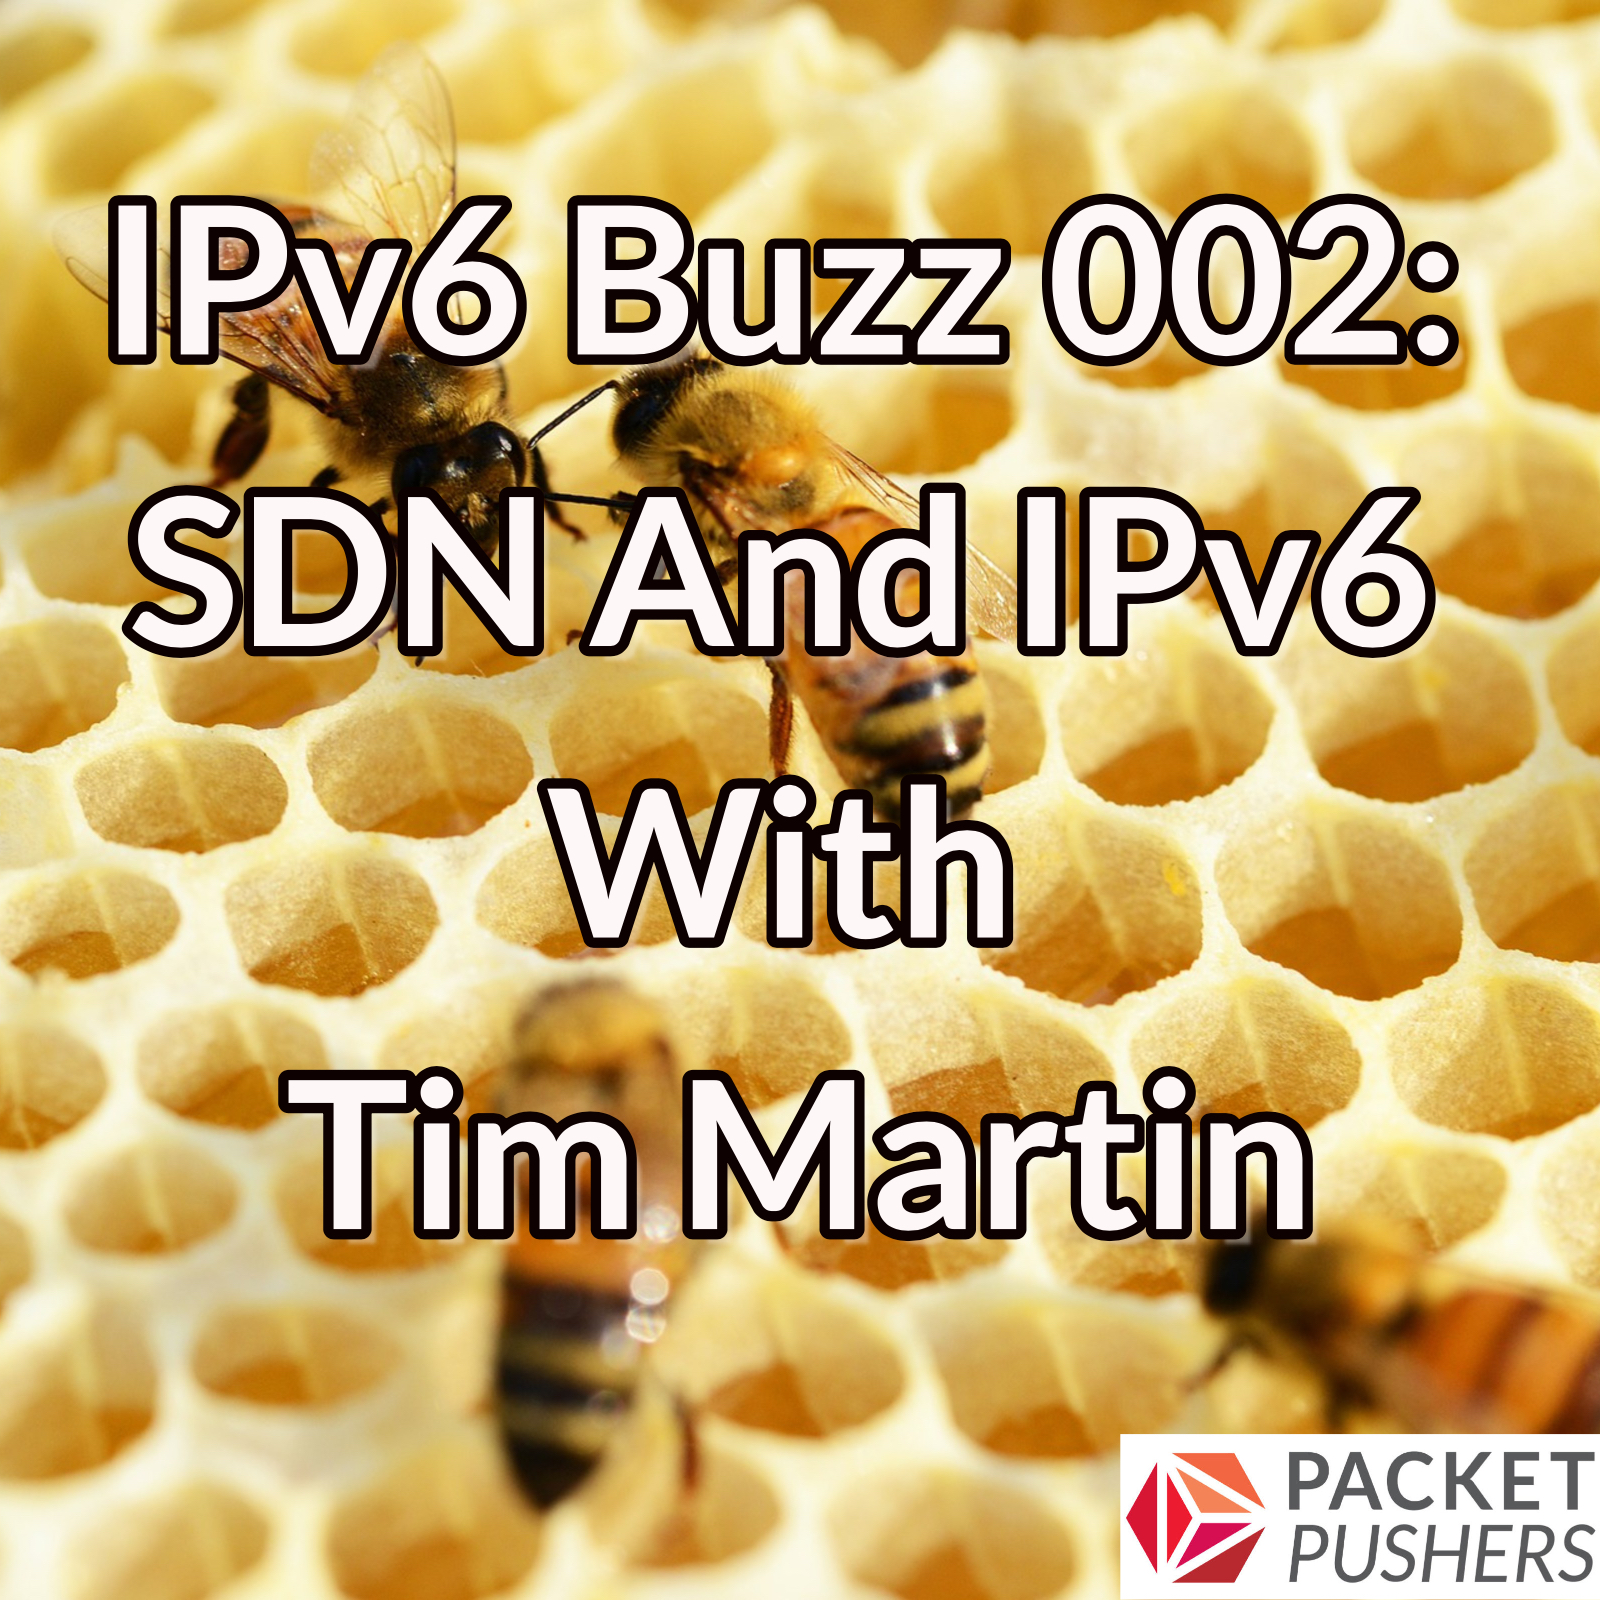 SDN And IPv6 With Tim Martin